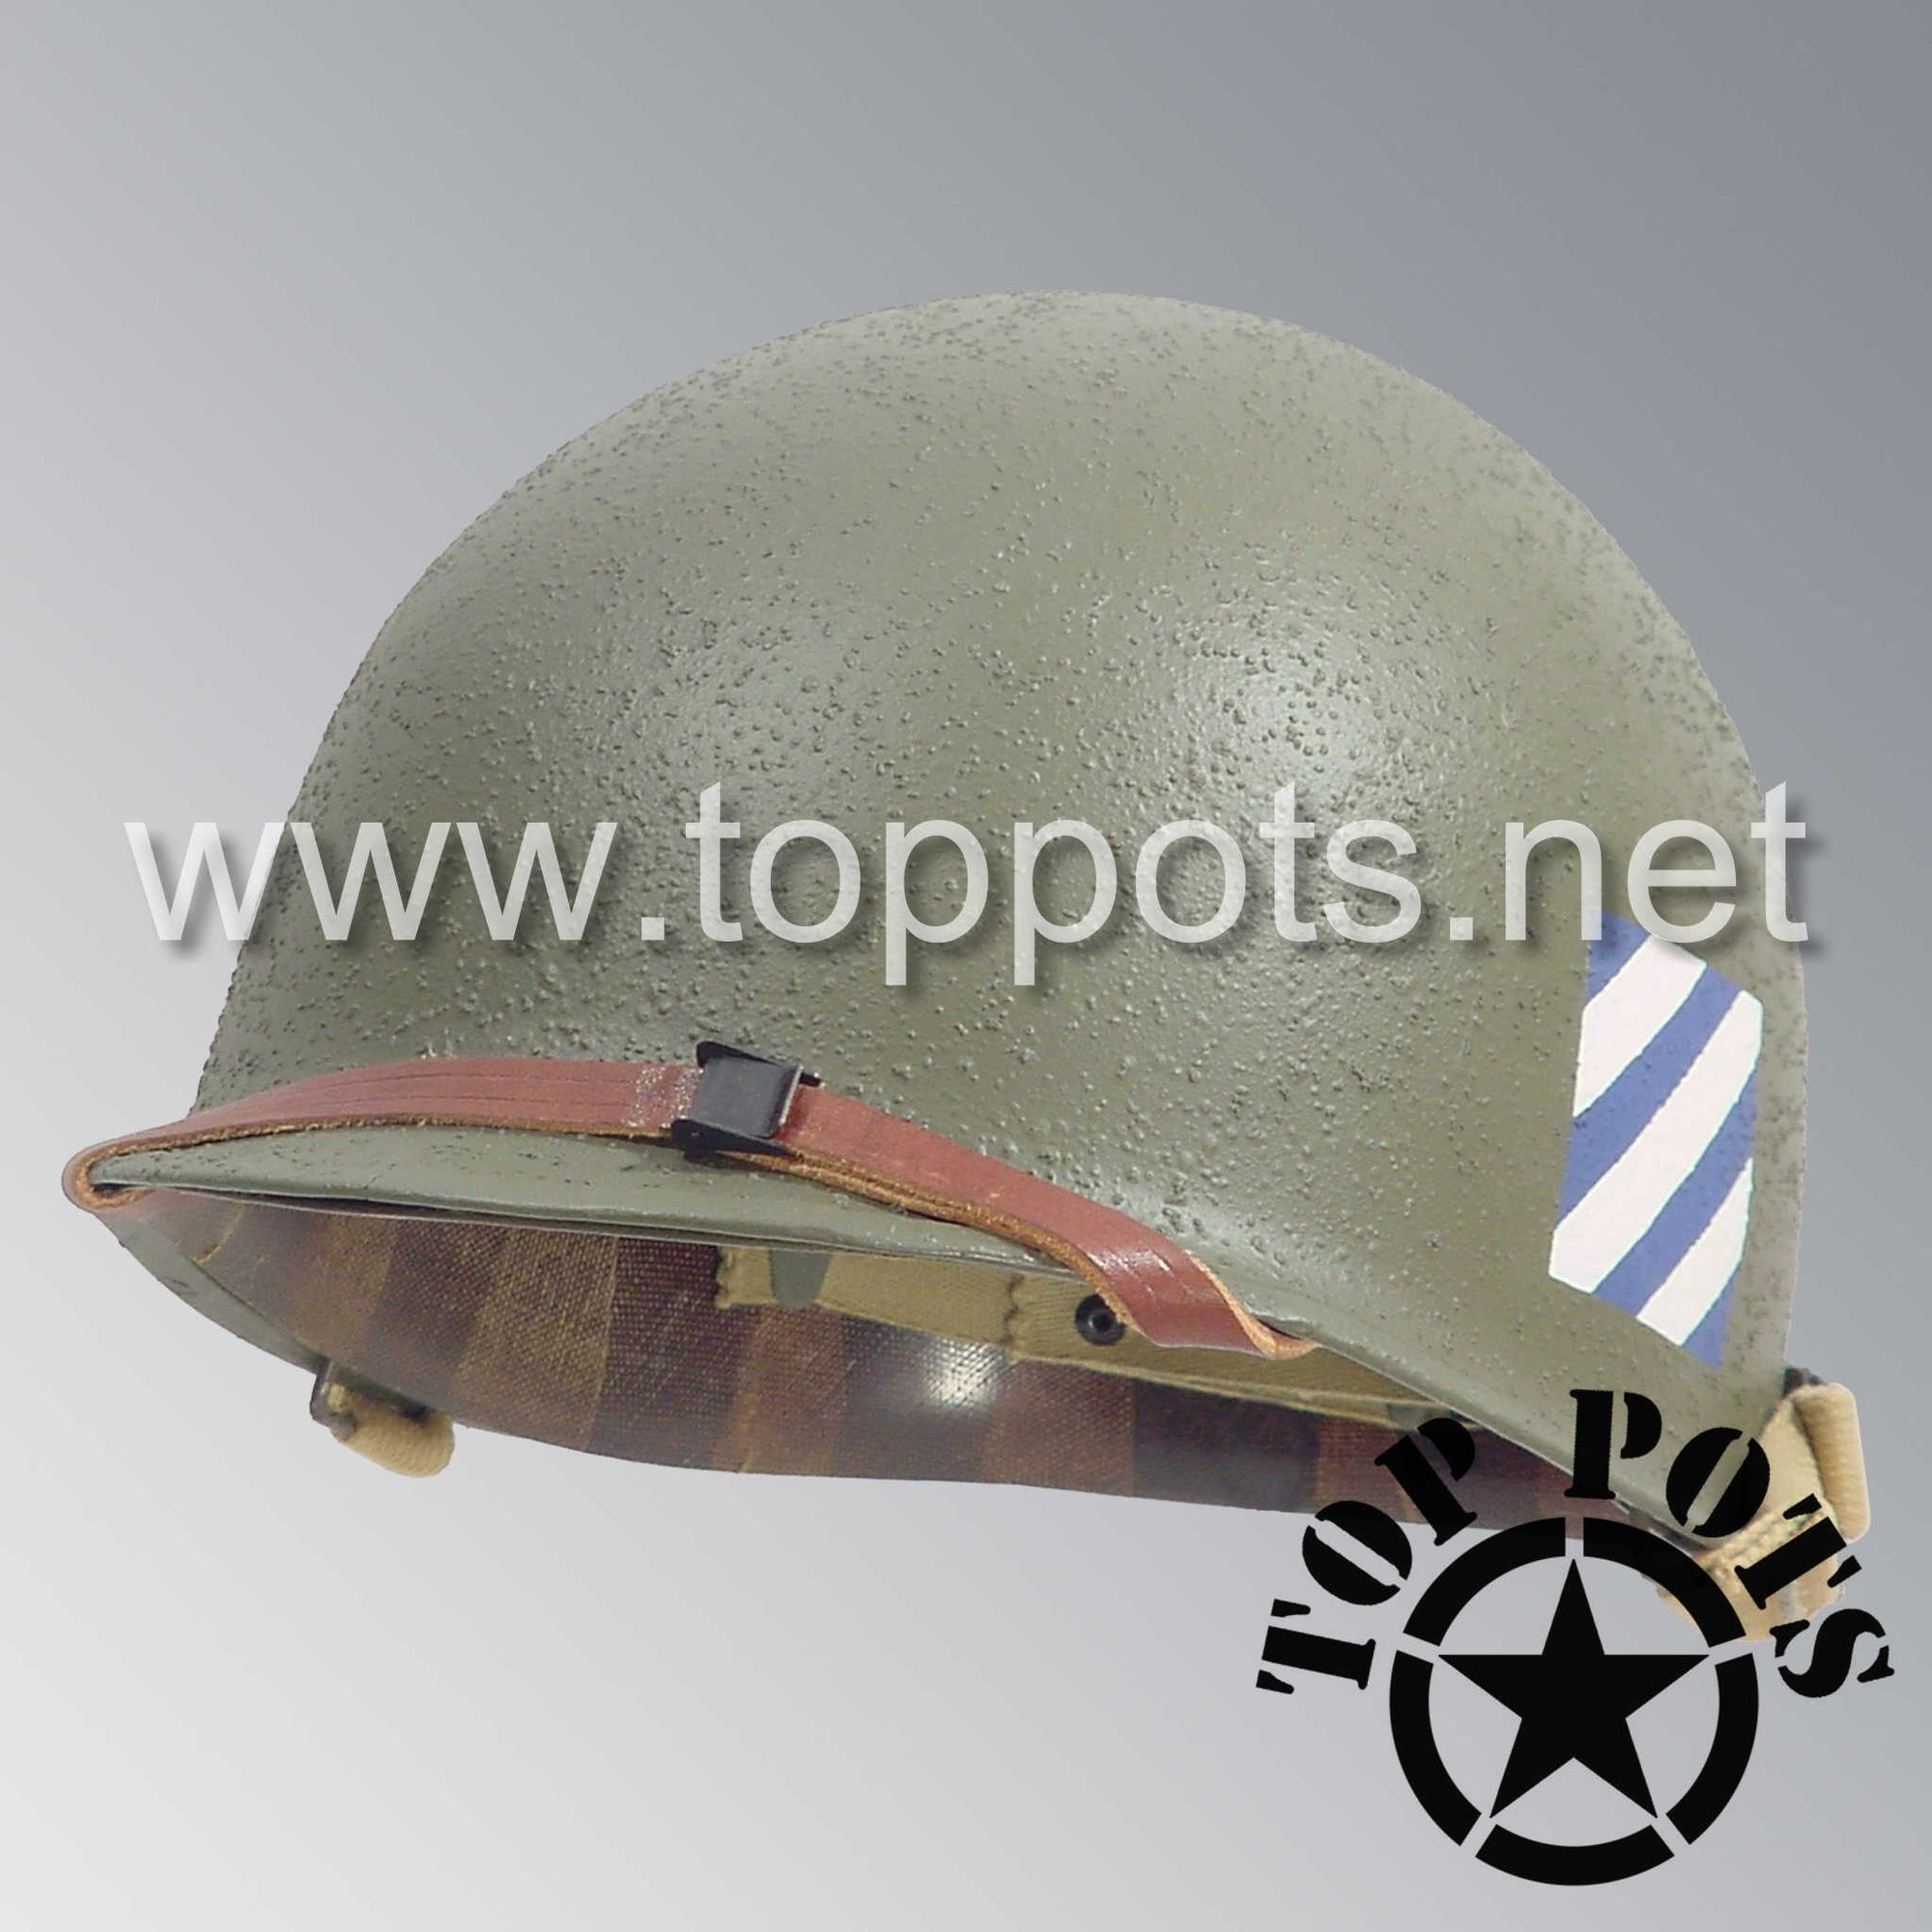 Image 1 of WWII US Army Restored Original M1 Infantry Helmet Swivel Bale Shell and Liner with 3rd Infantry Division Emblem